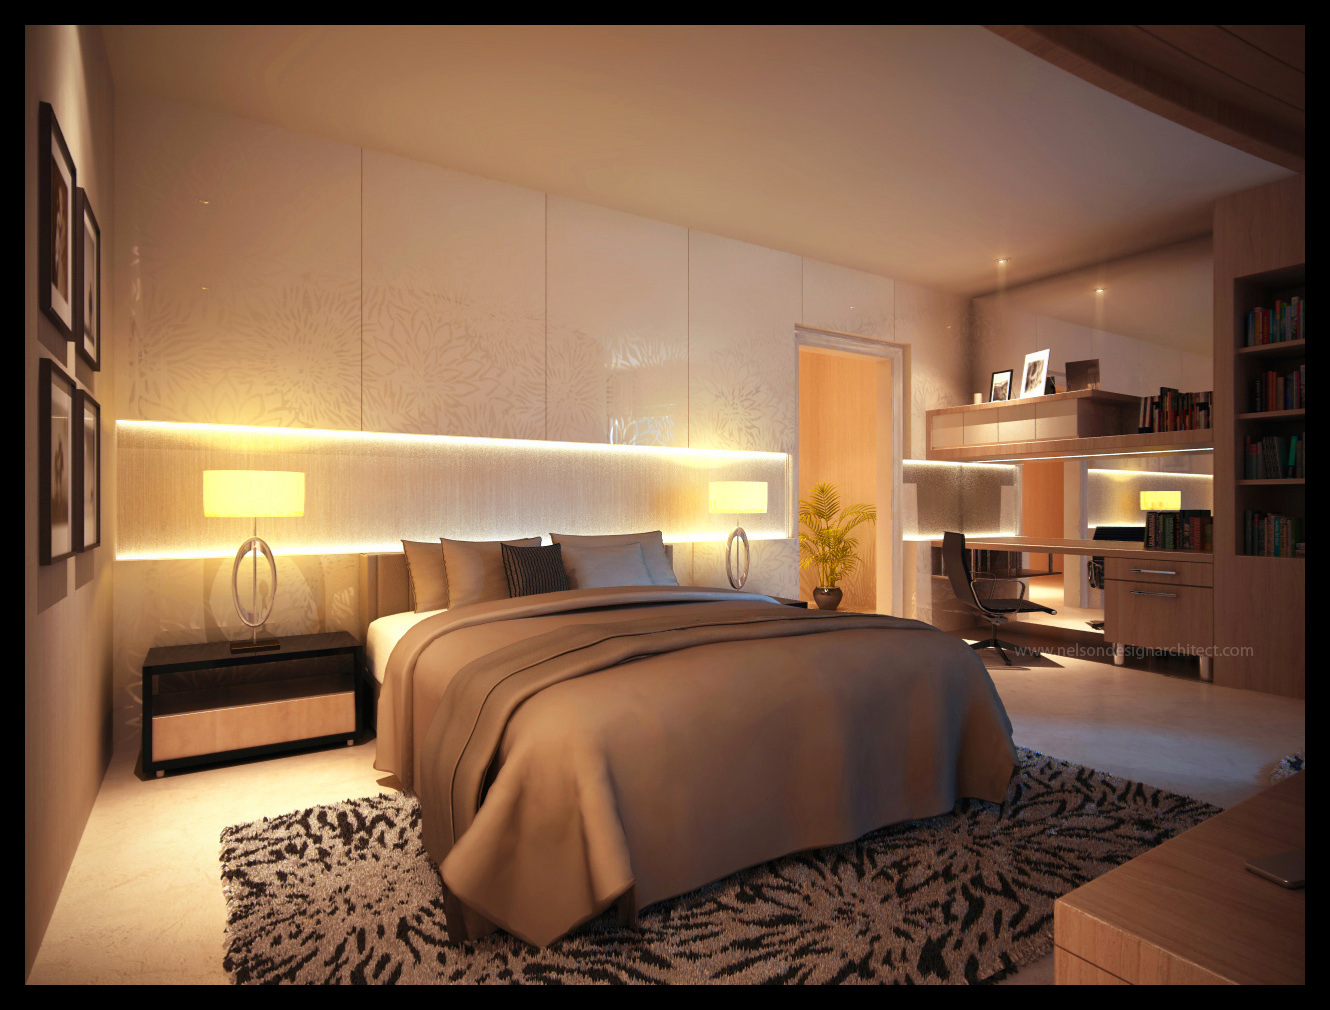 Another Bed Room By Neellss Another Bed Room By Neellss